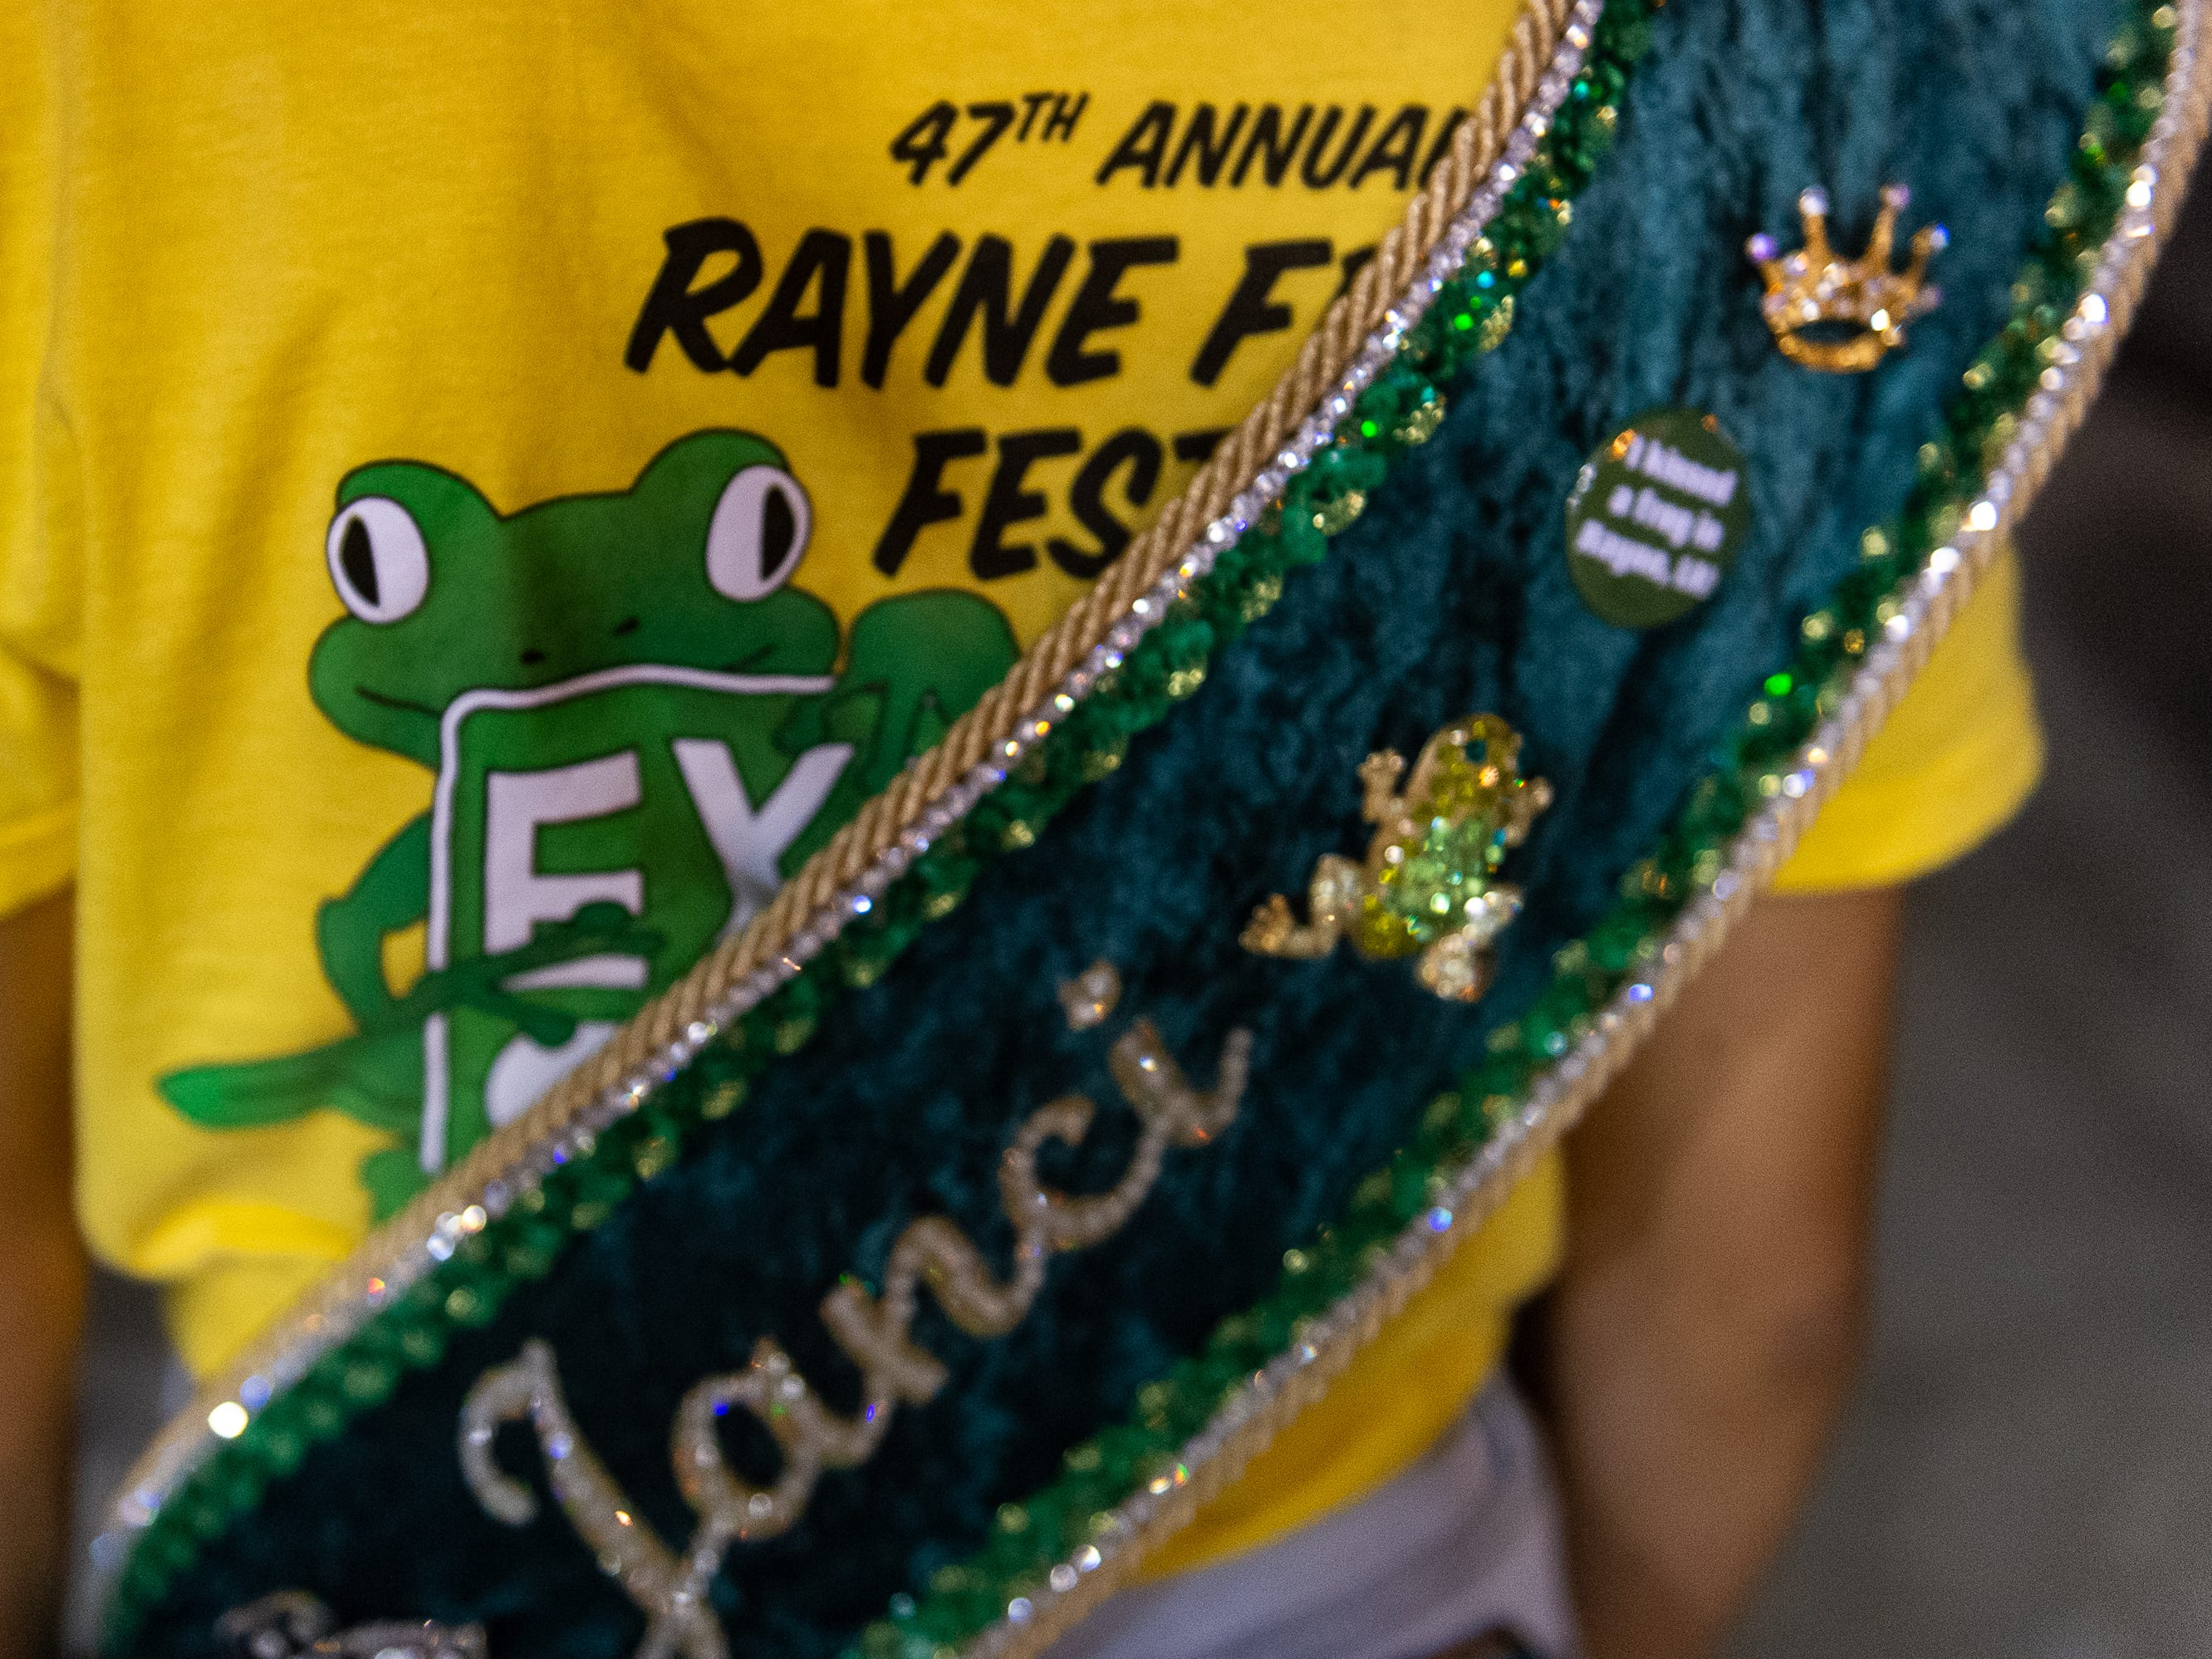 The Rayne Frog Festival features music, food and events. Friday, May 10, 2019.